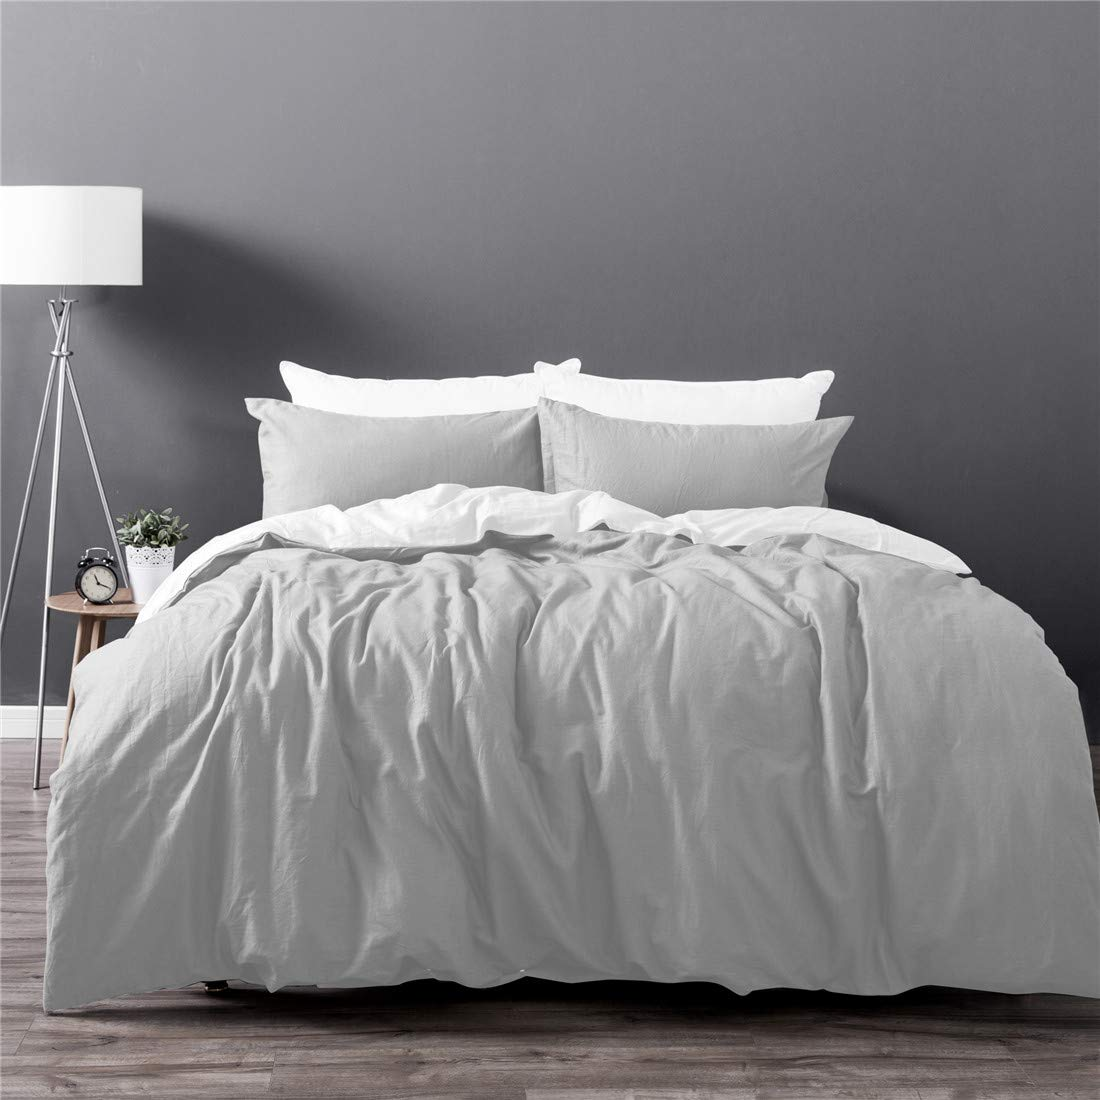 Dreamaker Soft Cotton Linen Duvet Cover Set w/ Pillowcase 180TC Button Enclosure Twin XL Queen King Size Bedding Set (White, Twin XL) JHT Manufacturing